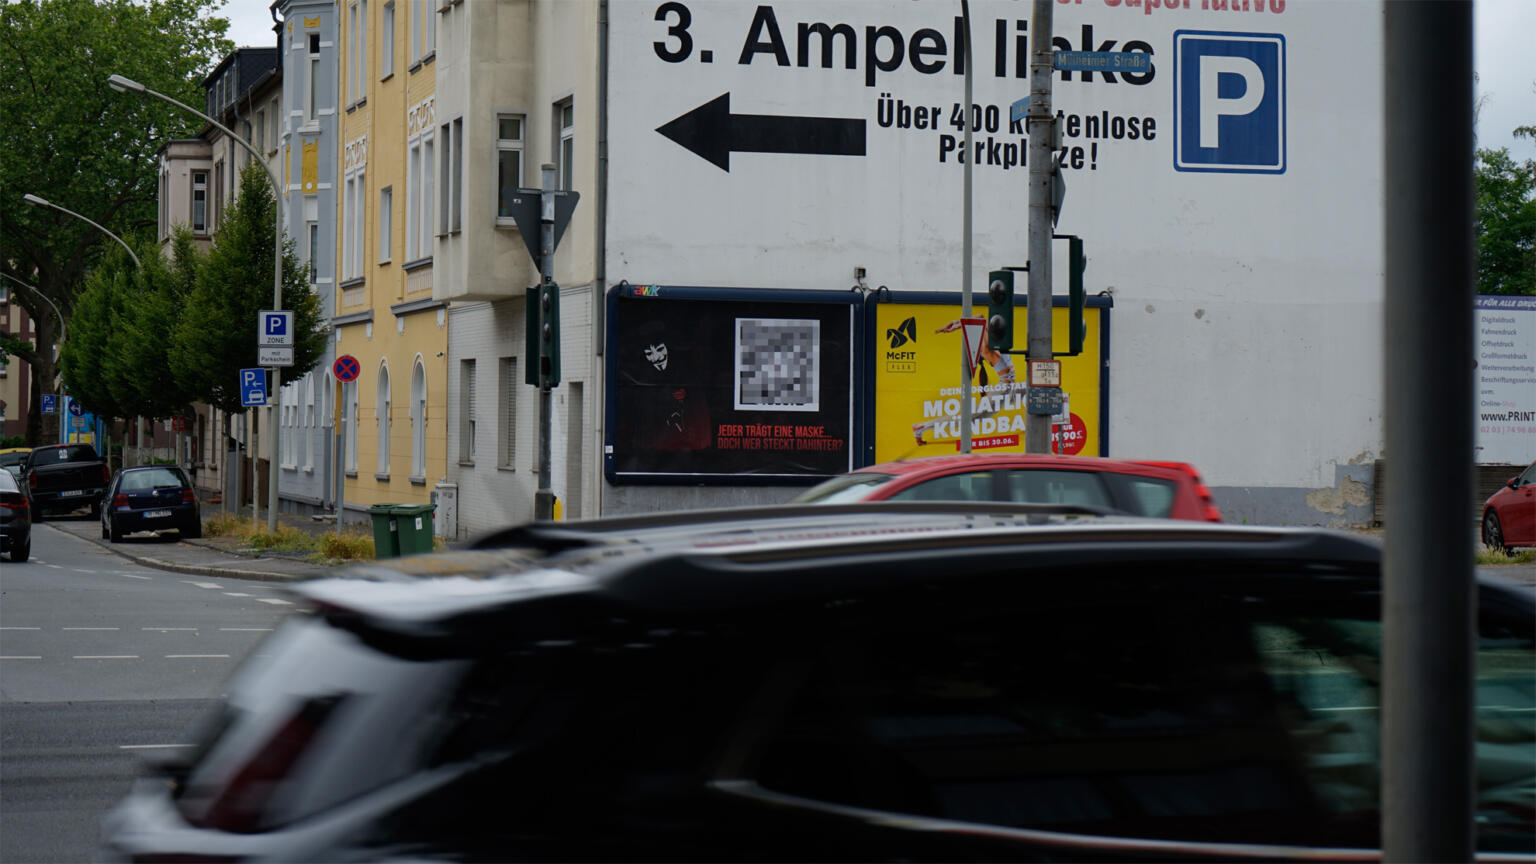 Internet marketing Guerilla marketing: German outdoor advertiser put up posters for online shop that sells drugs